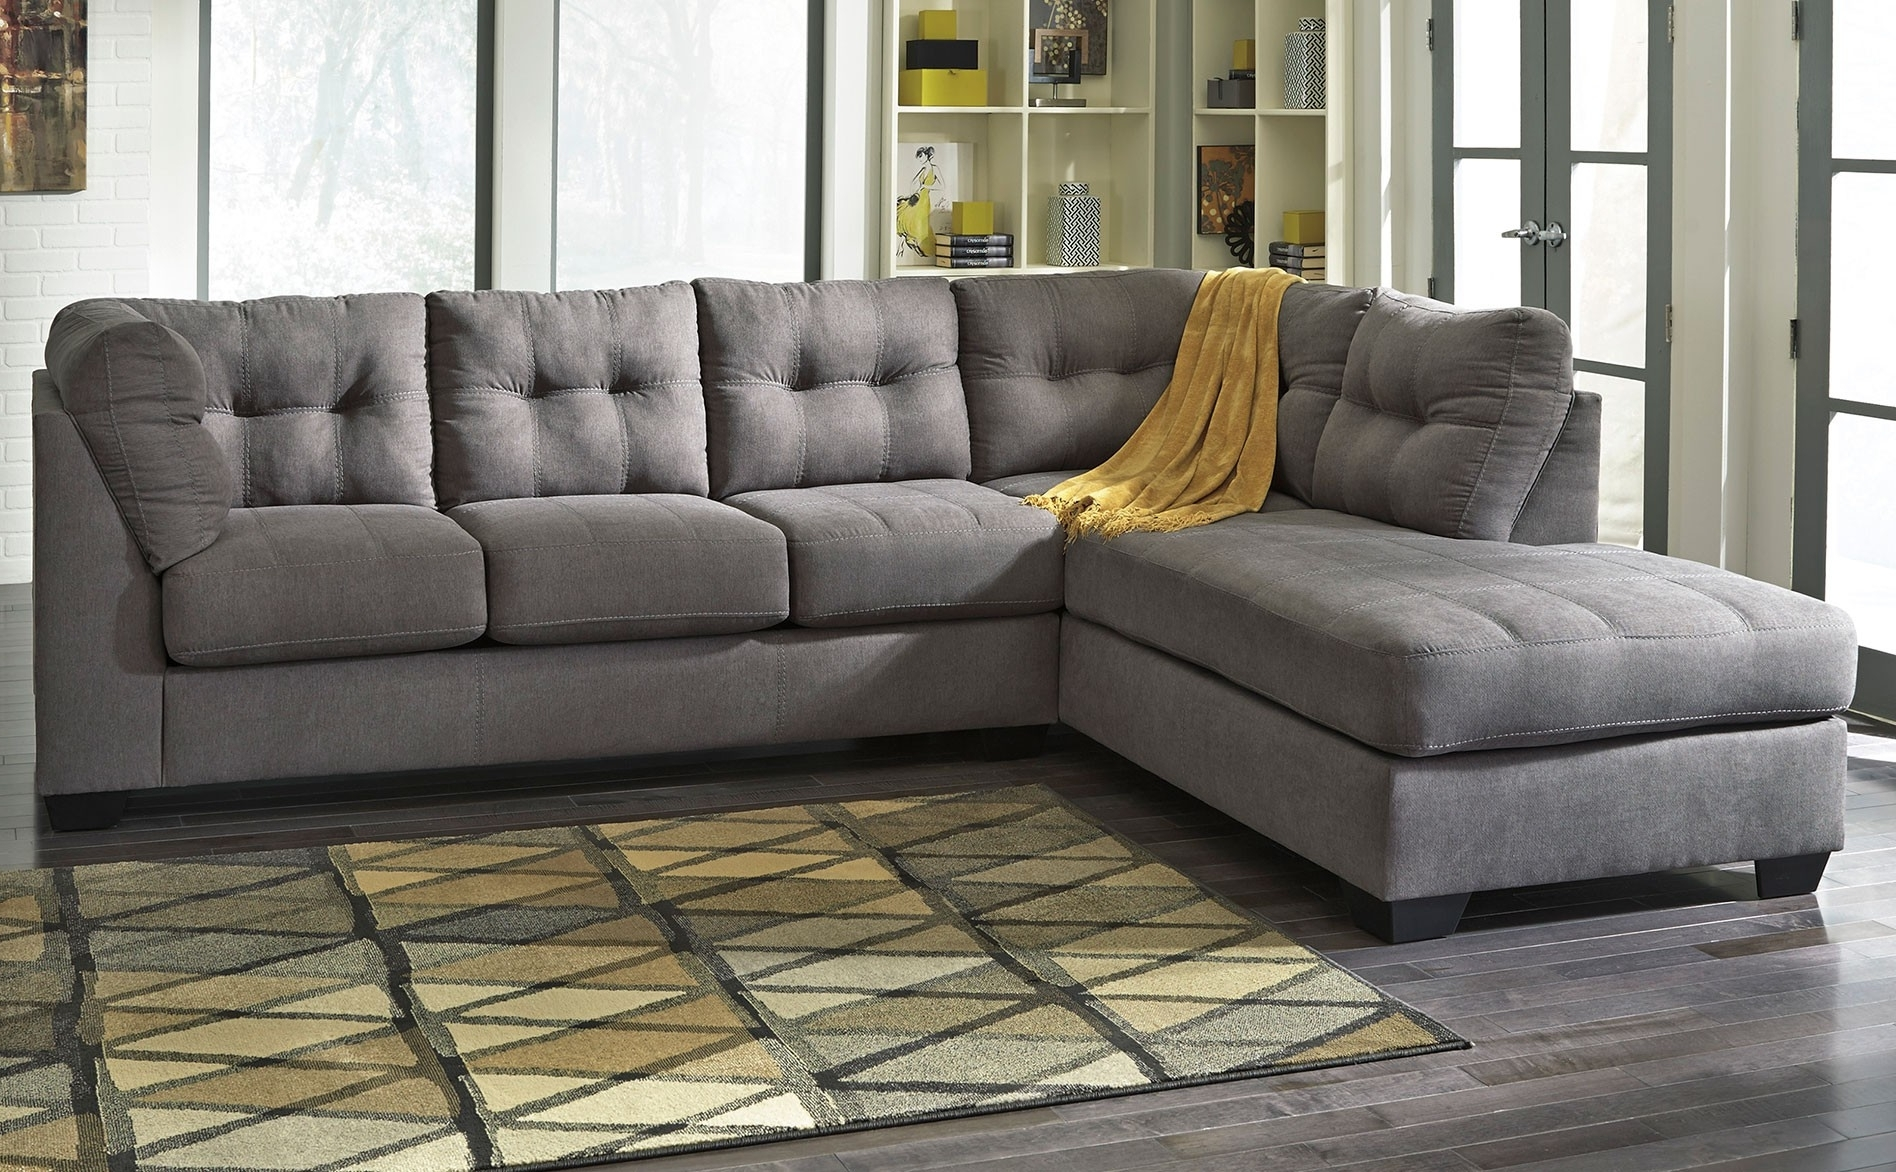 Light Grey Sectional Sofa Waverunner Modular Divani Casa Quebec Regarding Current Quebec Sectional Sofas (View 5 of 20)